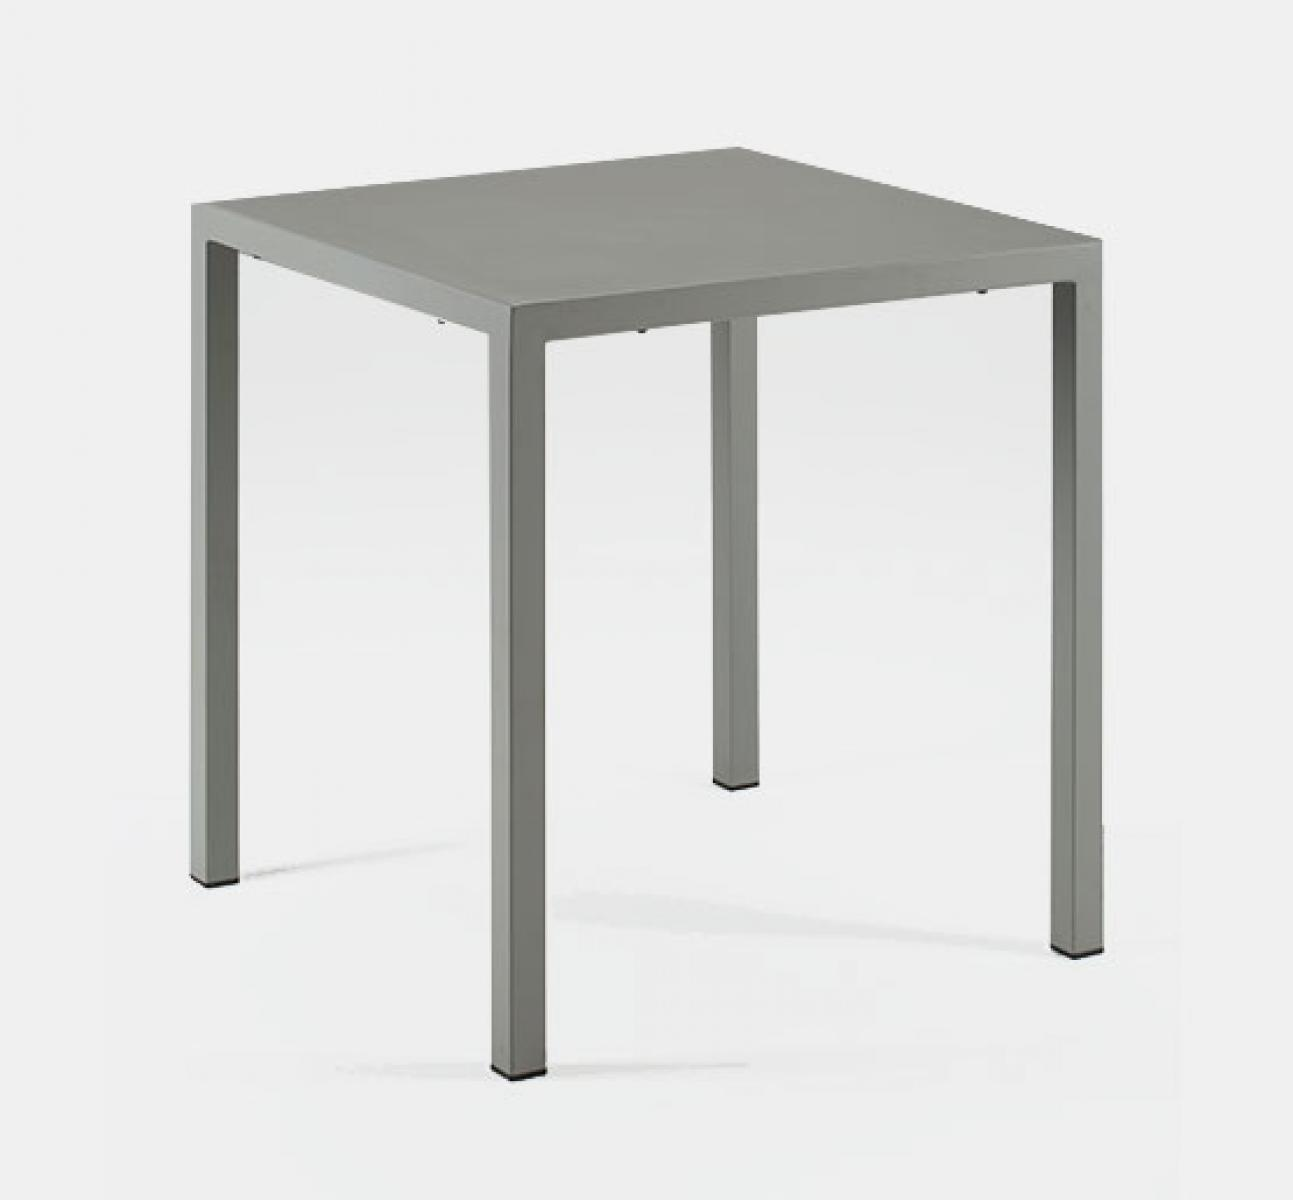 Adaptable dining table in grey